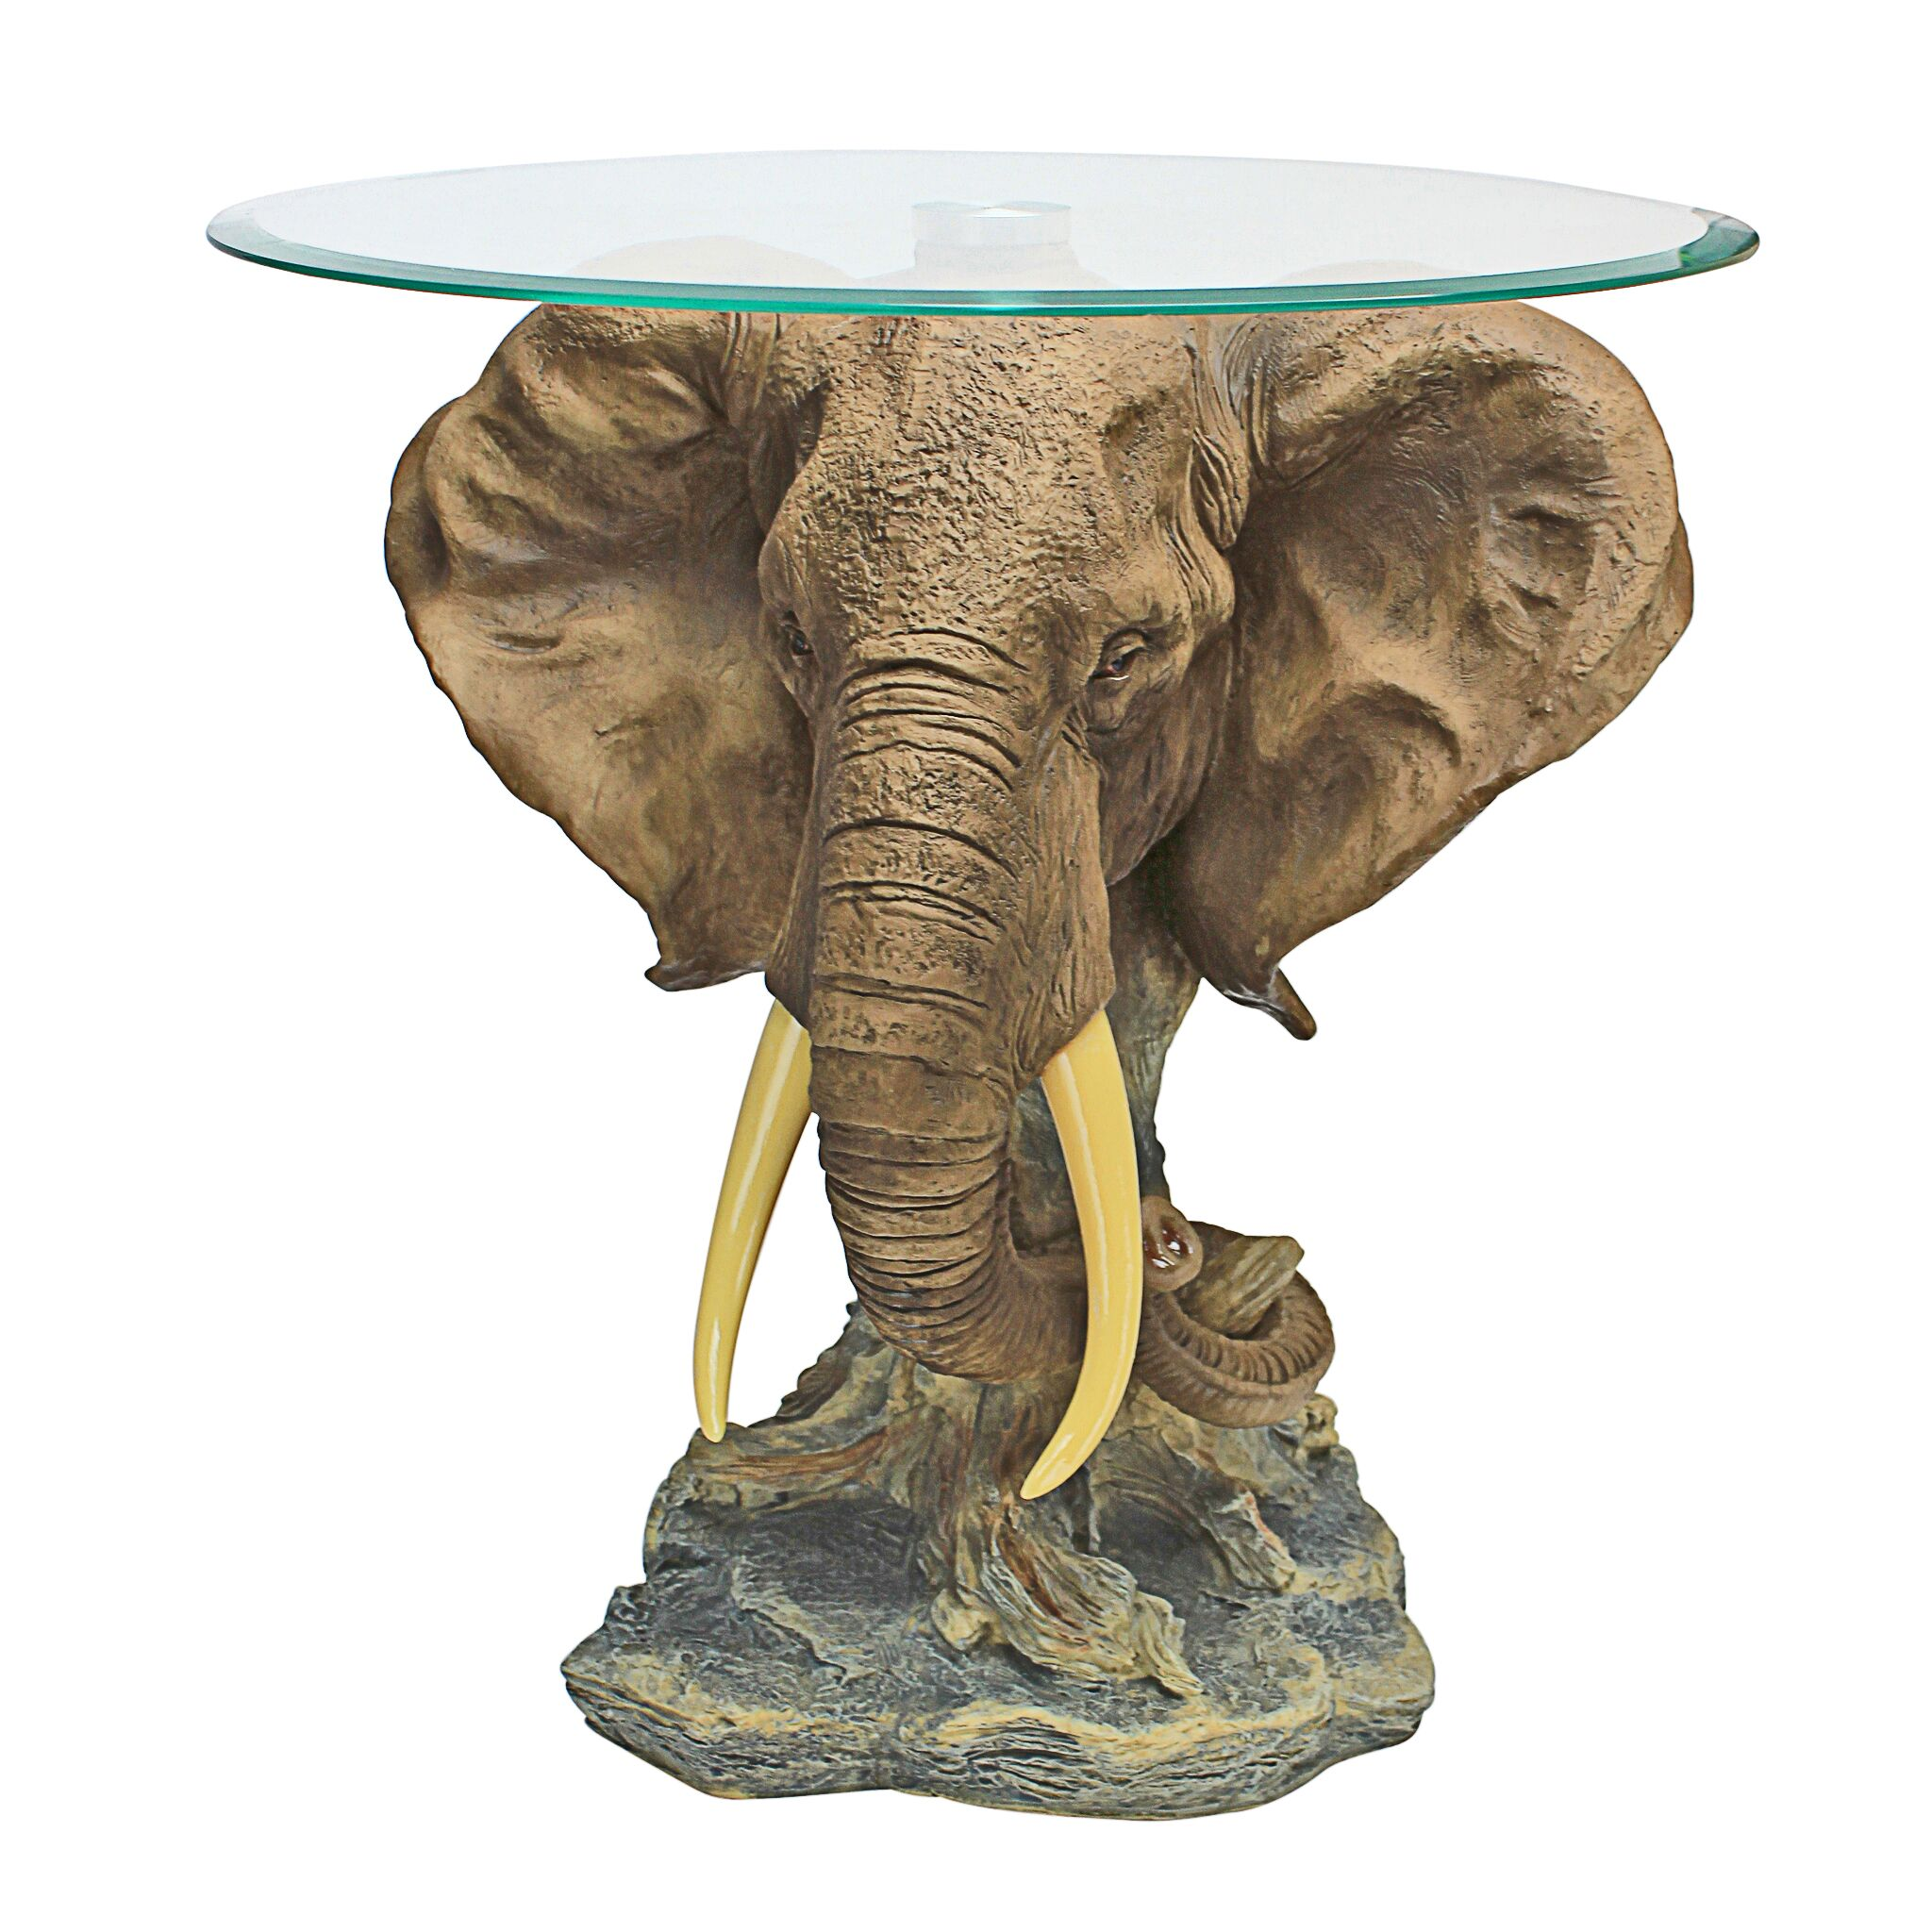 Lord Earl Houghton's Trophy Elephant End Table